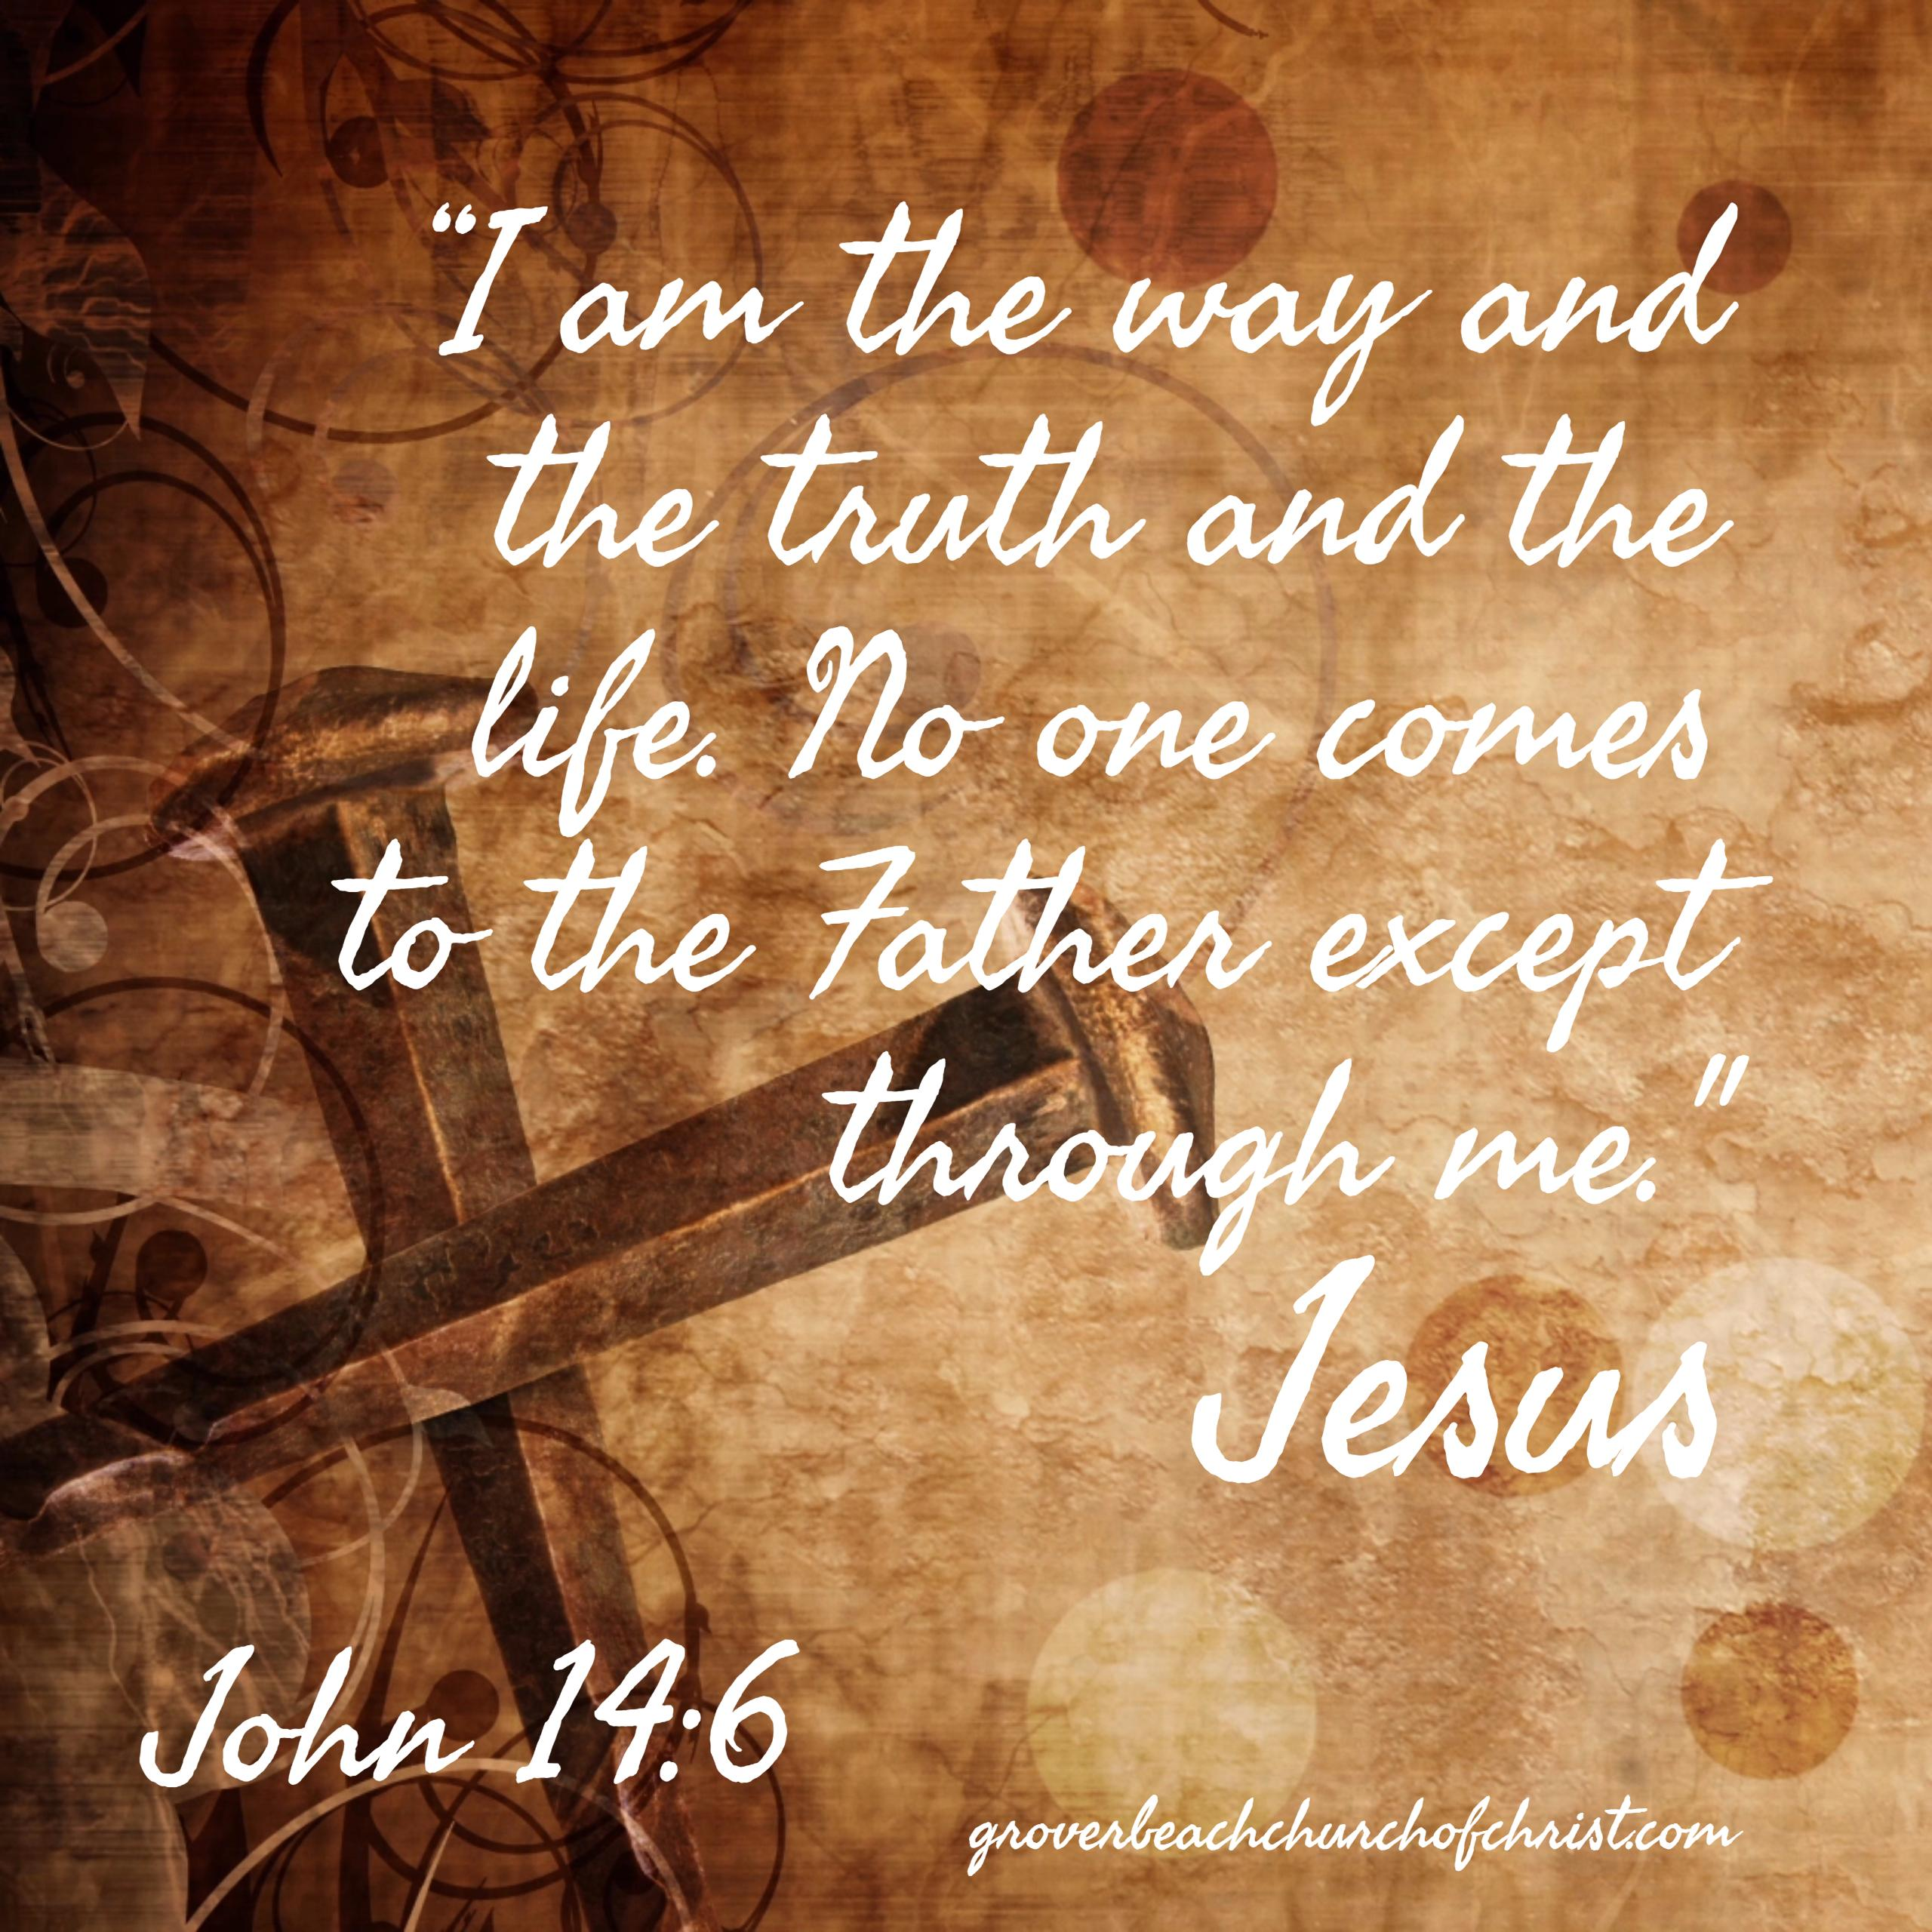 John 14:6 I am the way the truth